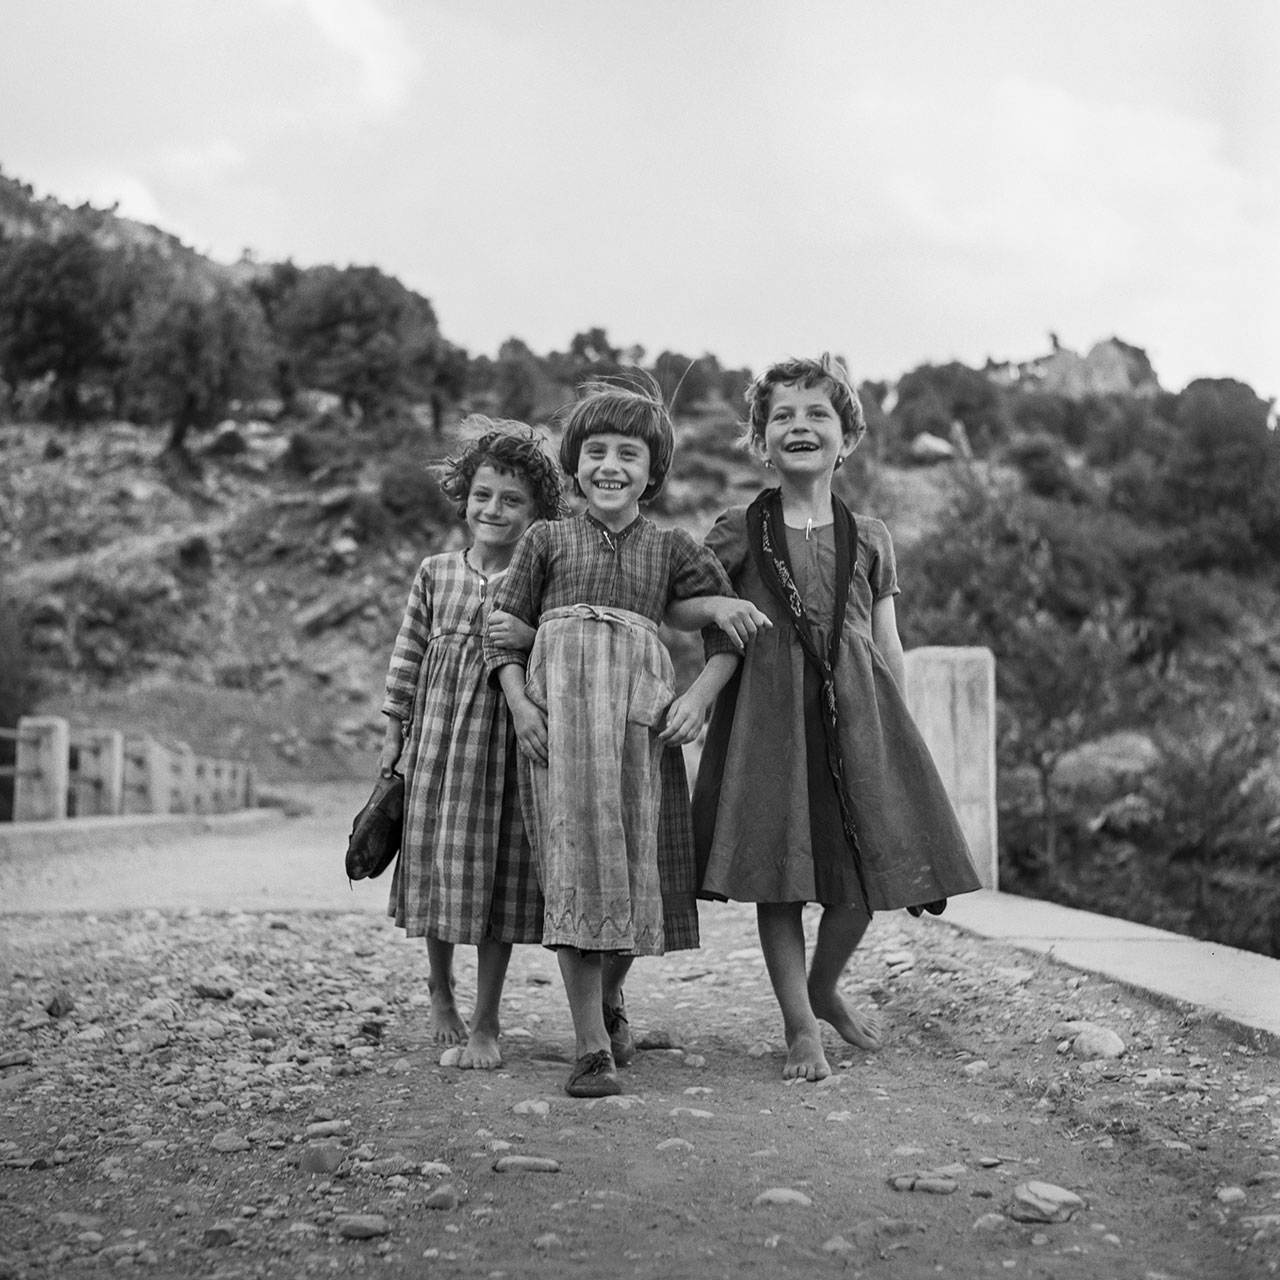 Three Friends, Ano Peristeri, Epiros 1961. Photo © Robert McCabe.